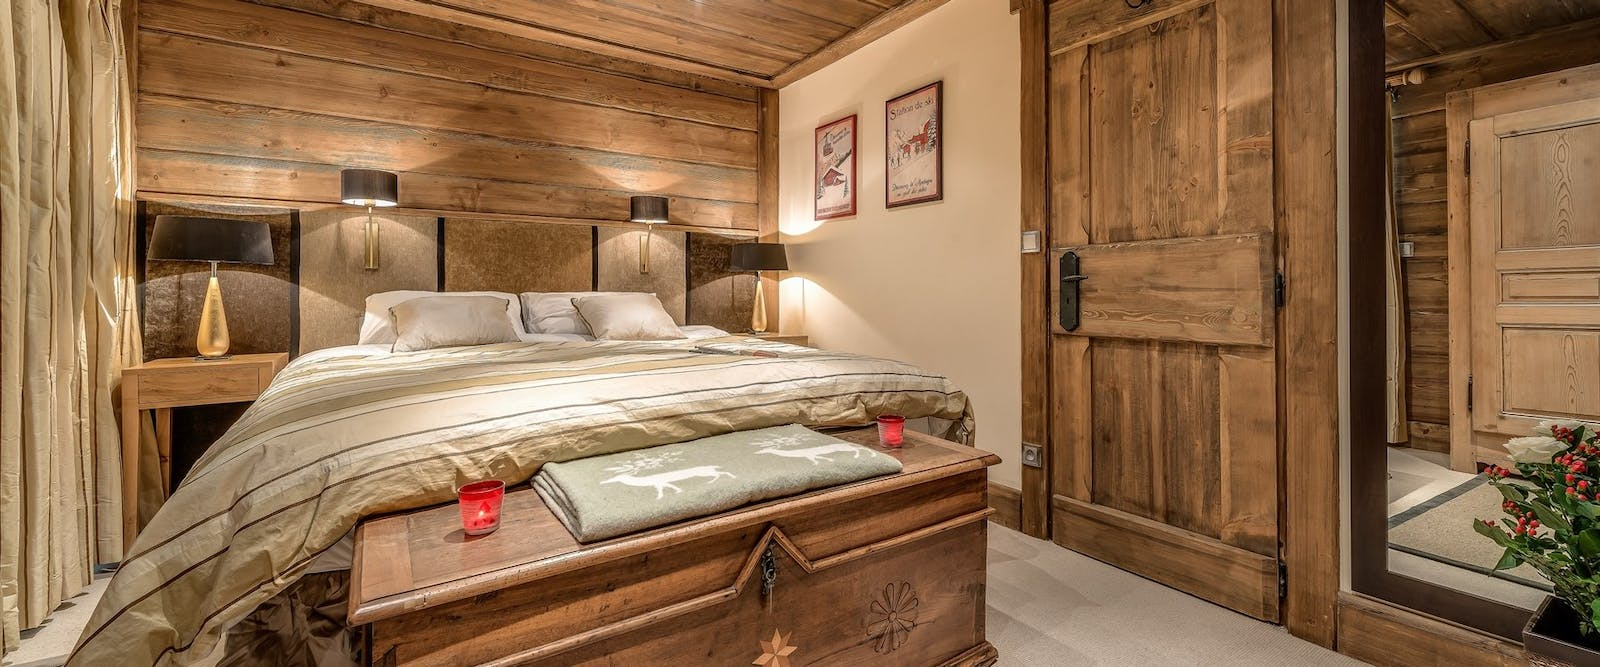 Bedroom at Chalet Chopine